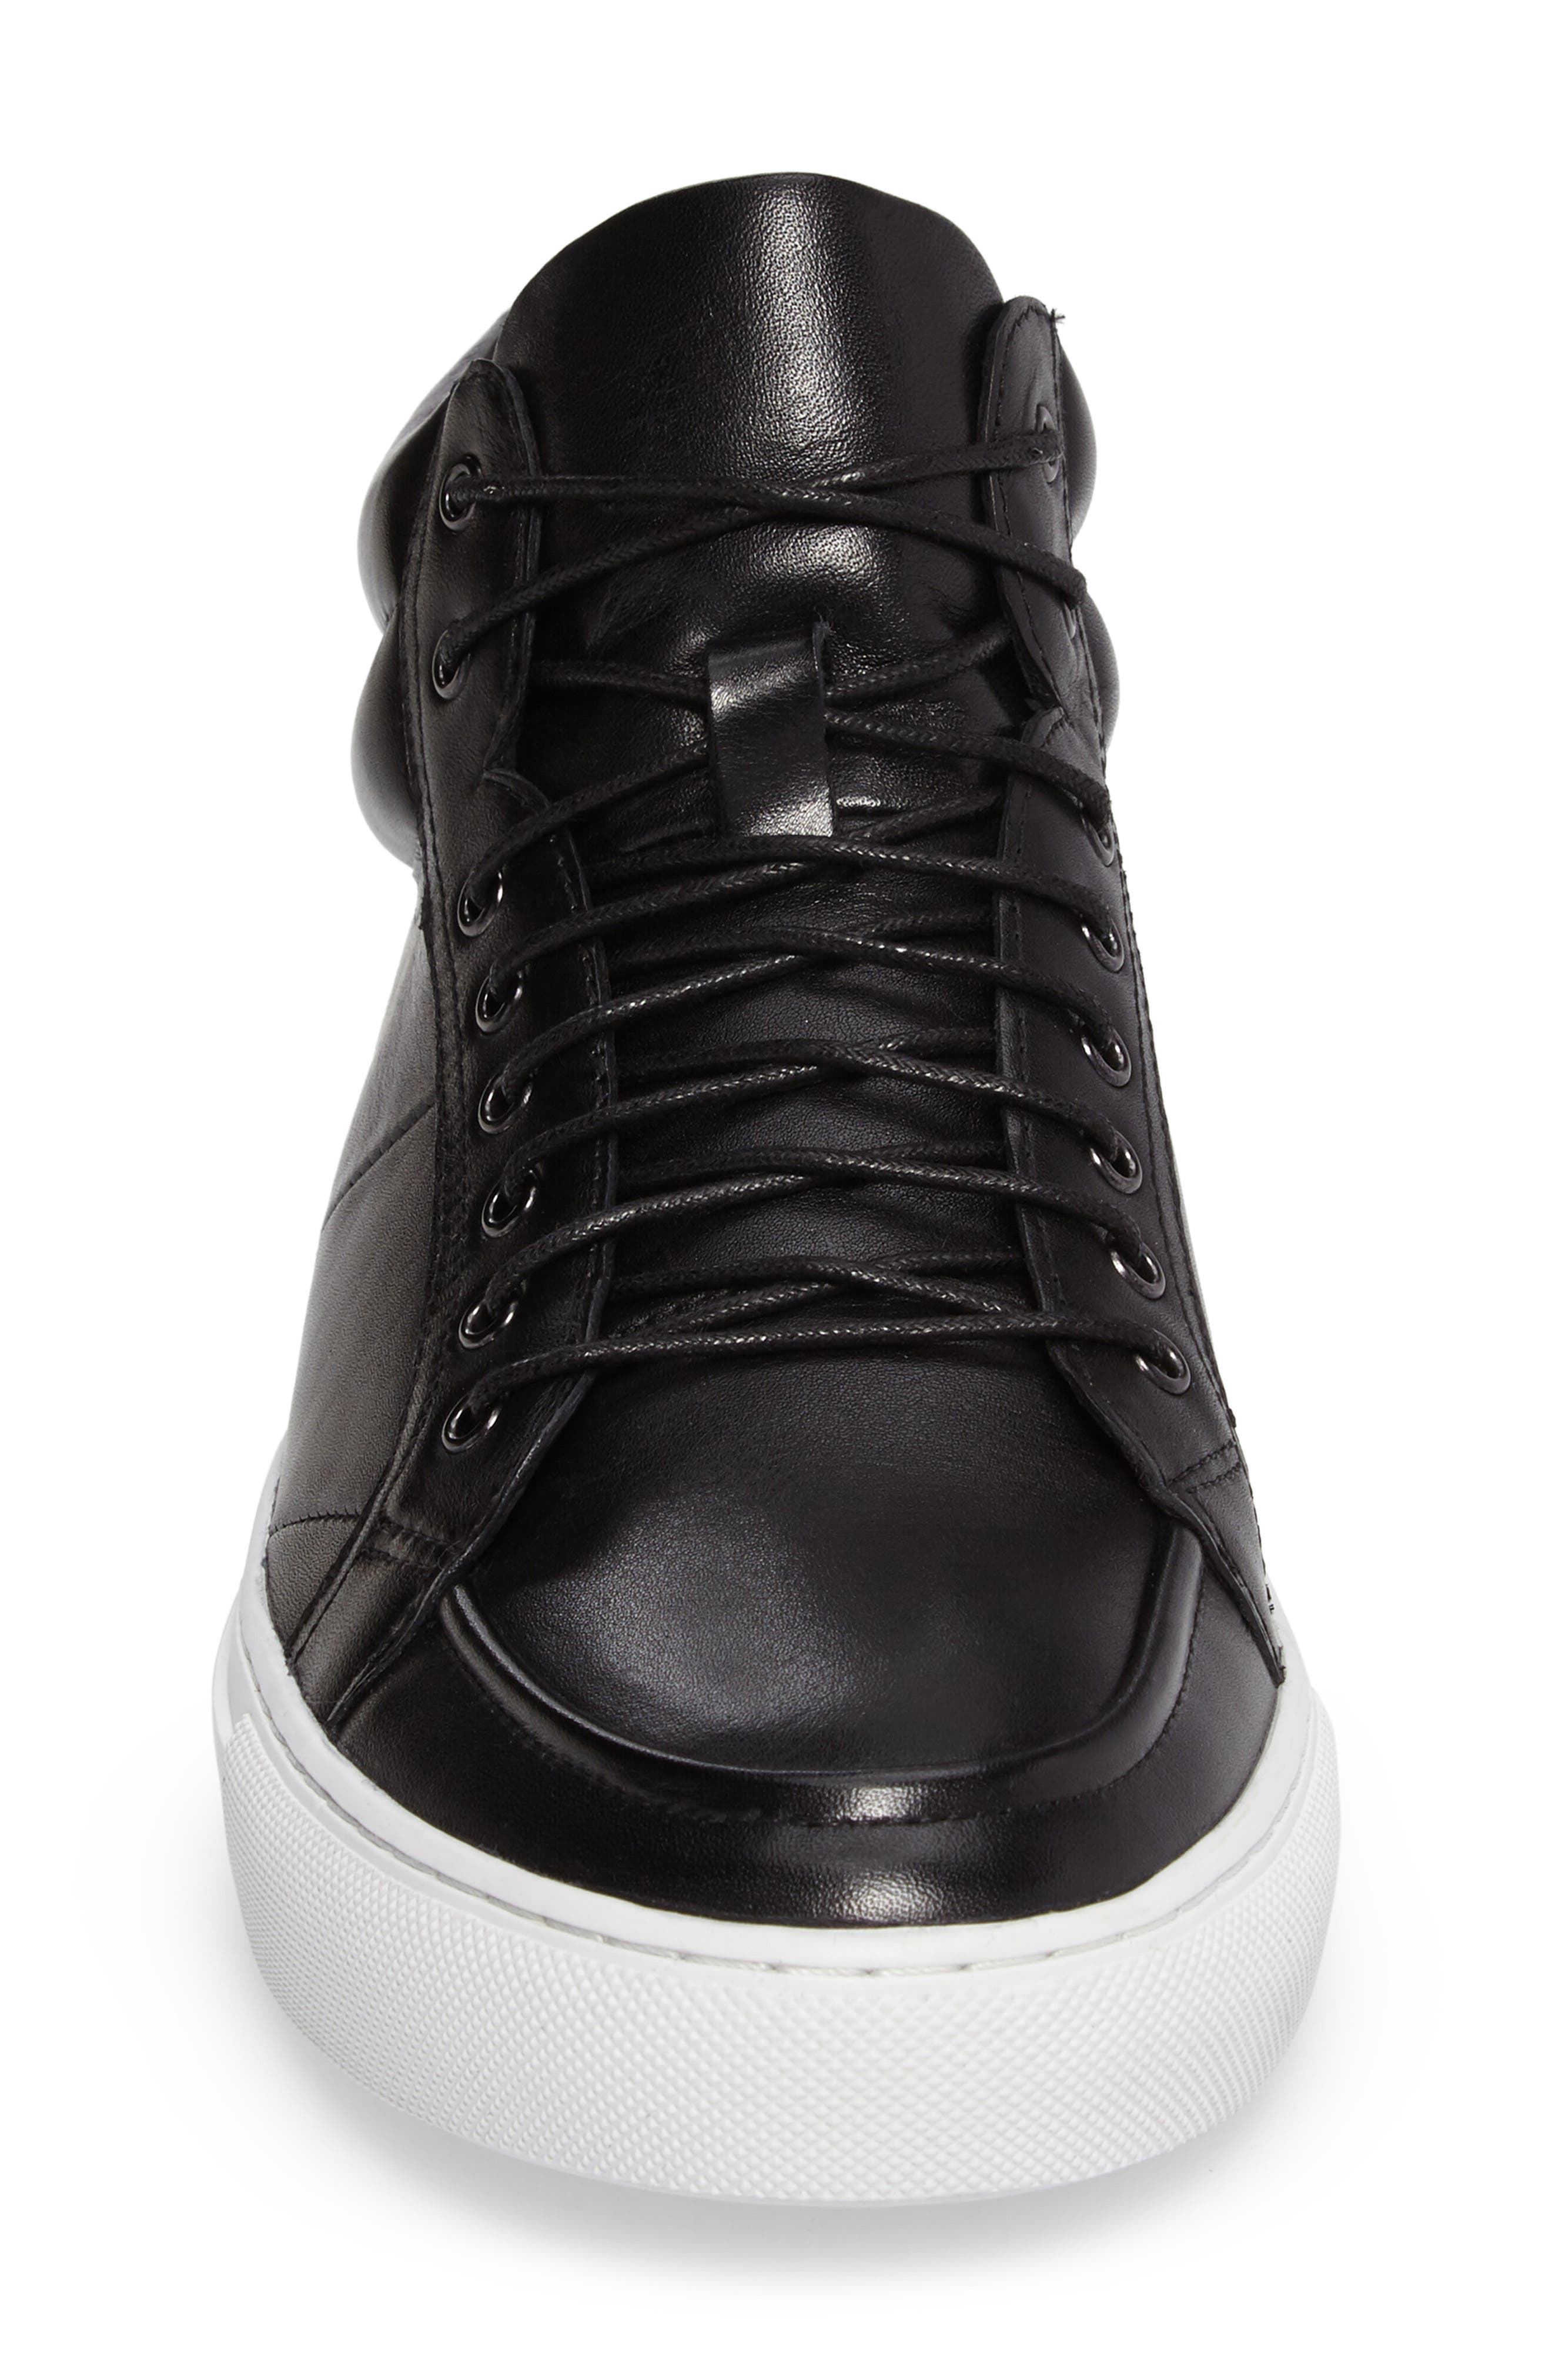 Alternate Image 4  - Zanzara Clef Sneaker (Men)